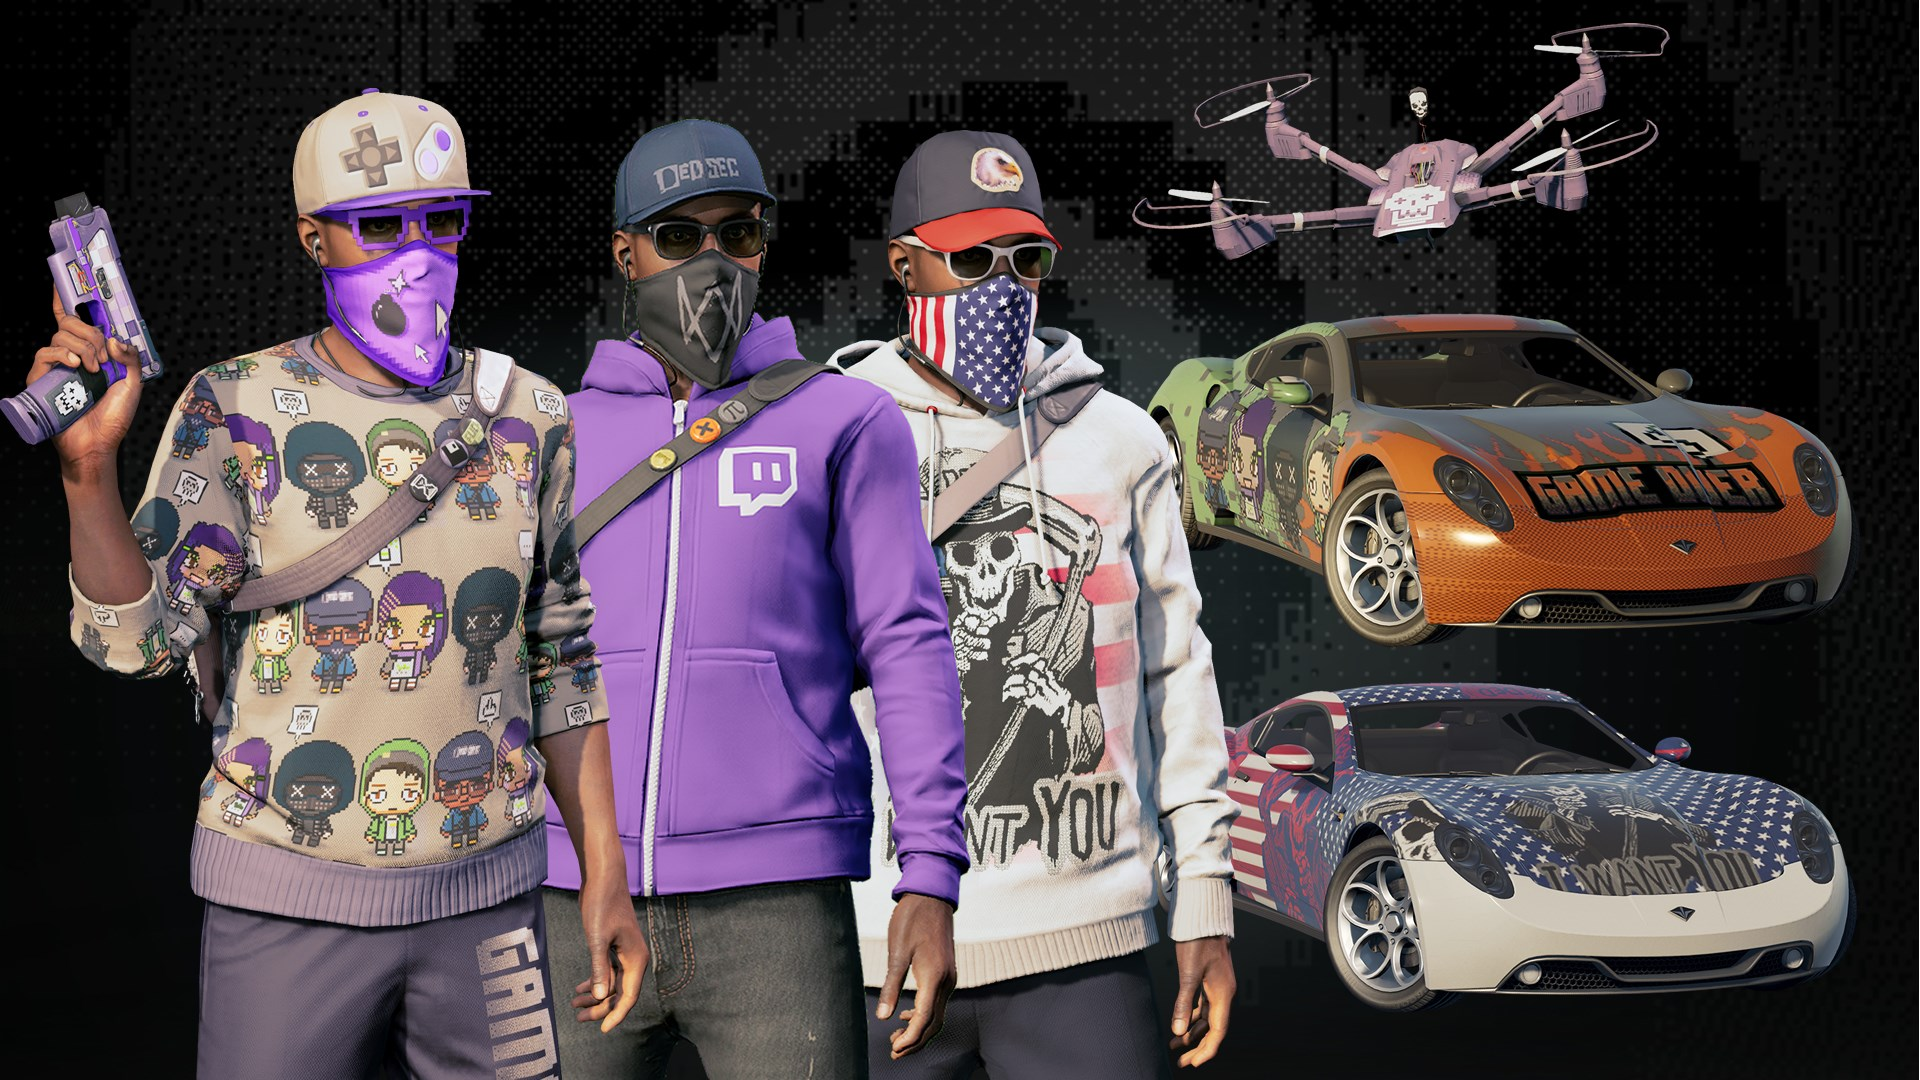 Watch Dogs®2 - Fully Decked Out Bundle